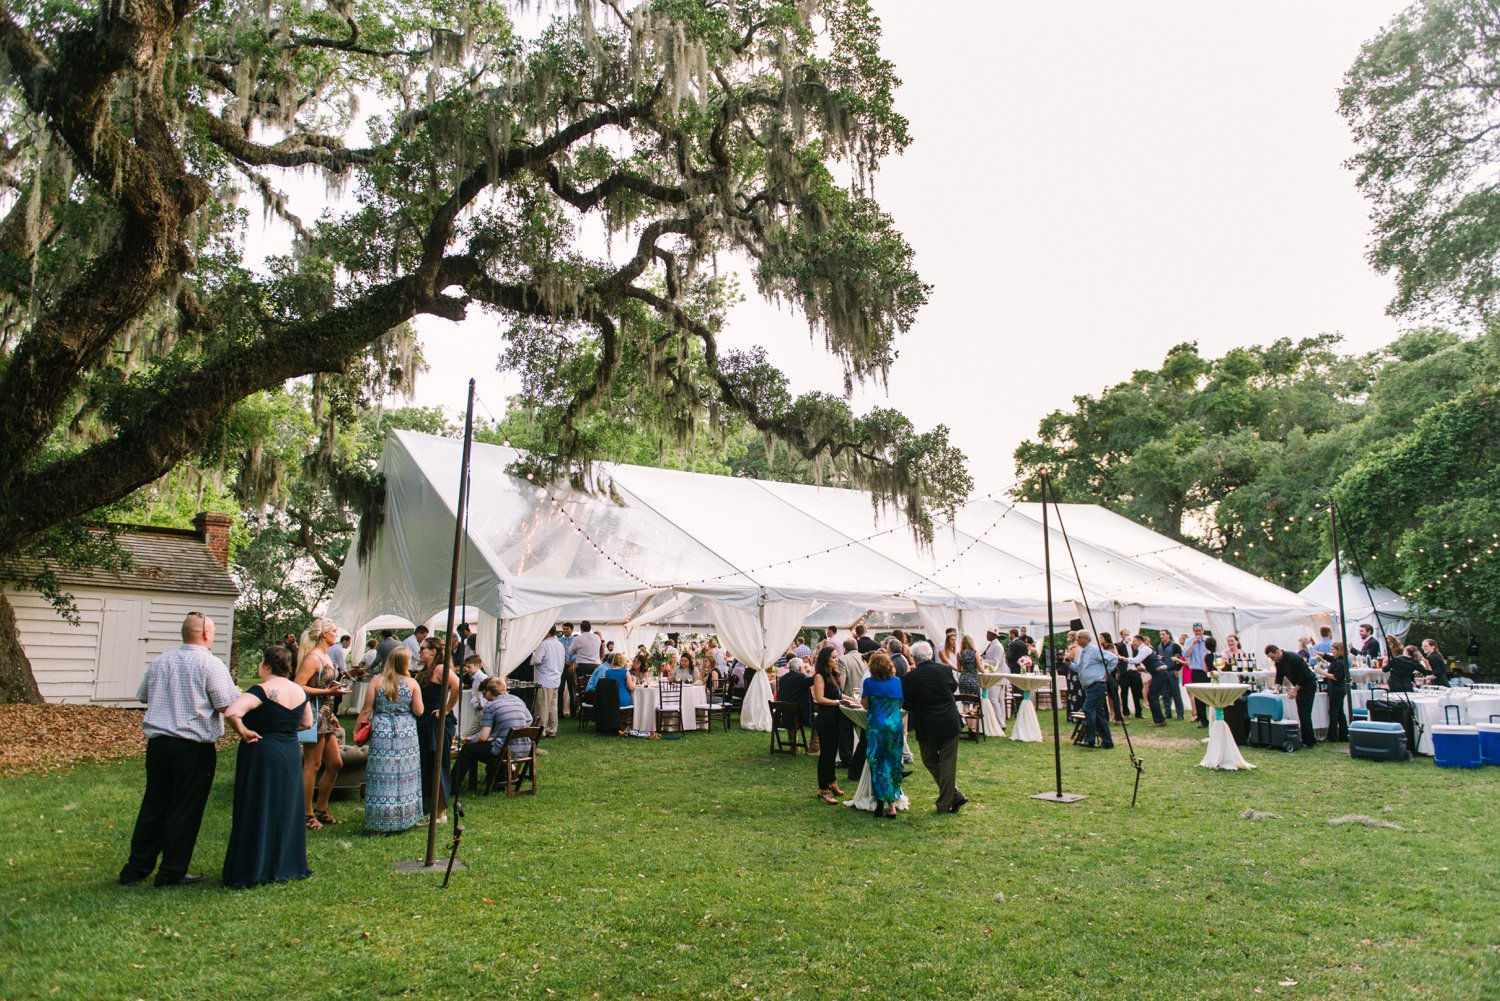 Lindsey_A_Miller_Photography_mcleod_plantation_wedding_charleston_south_carolina_clear_tent_spring_mod_events_077.jpg